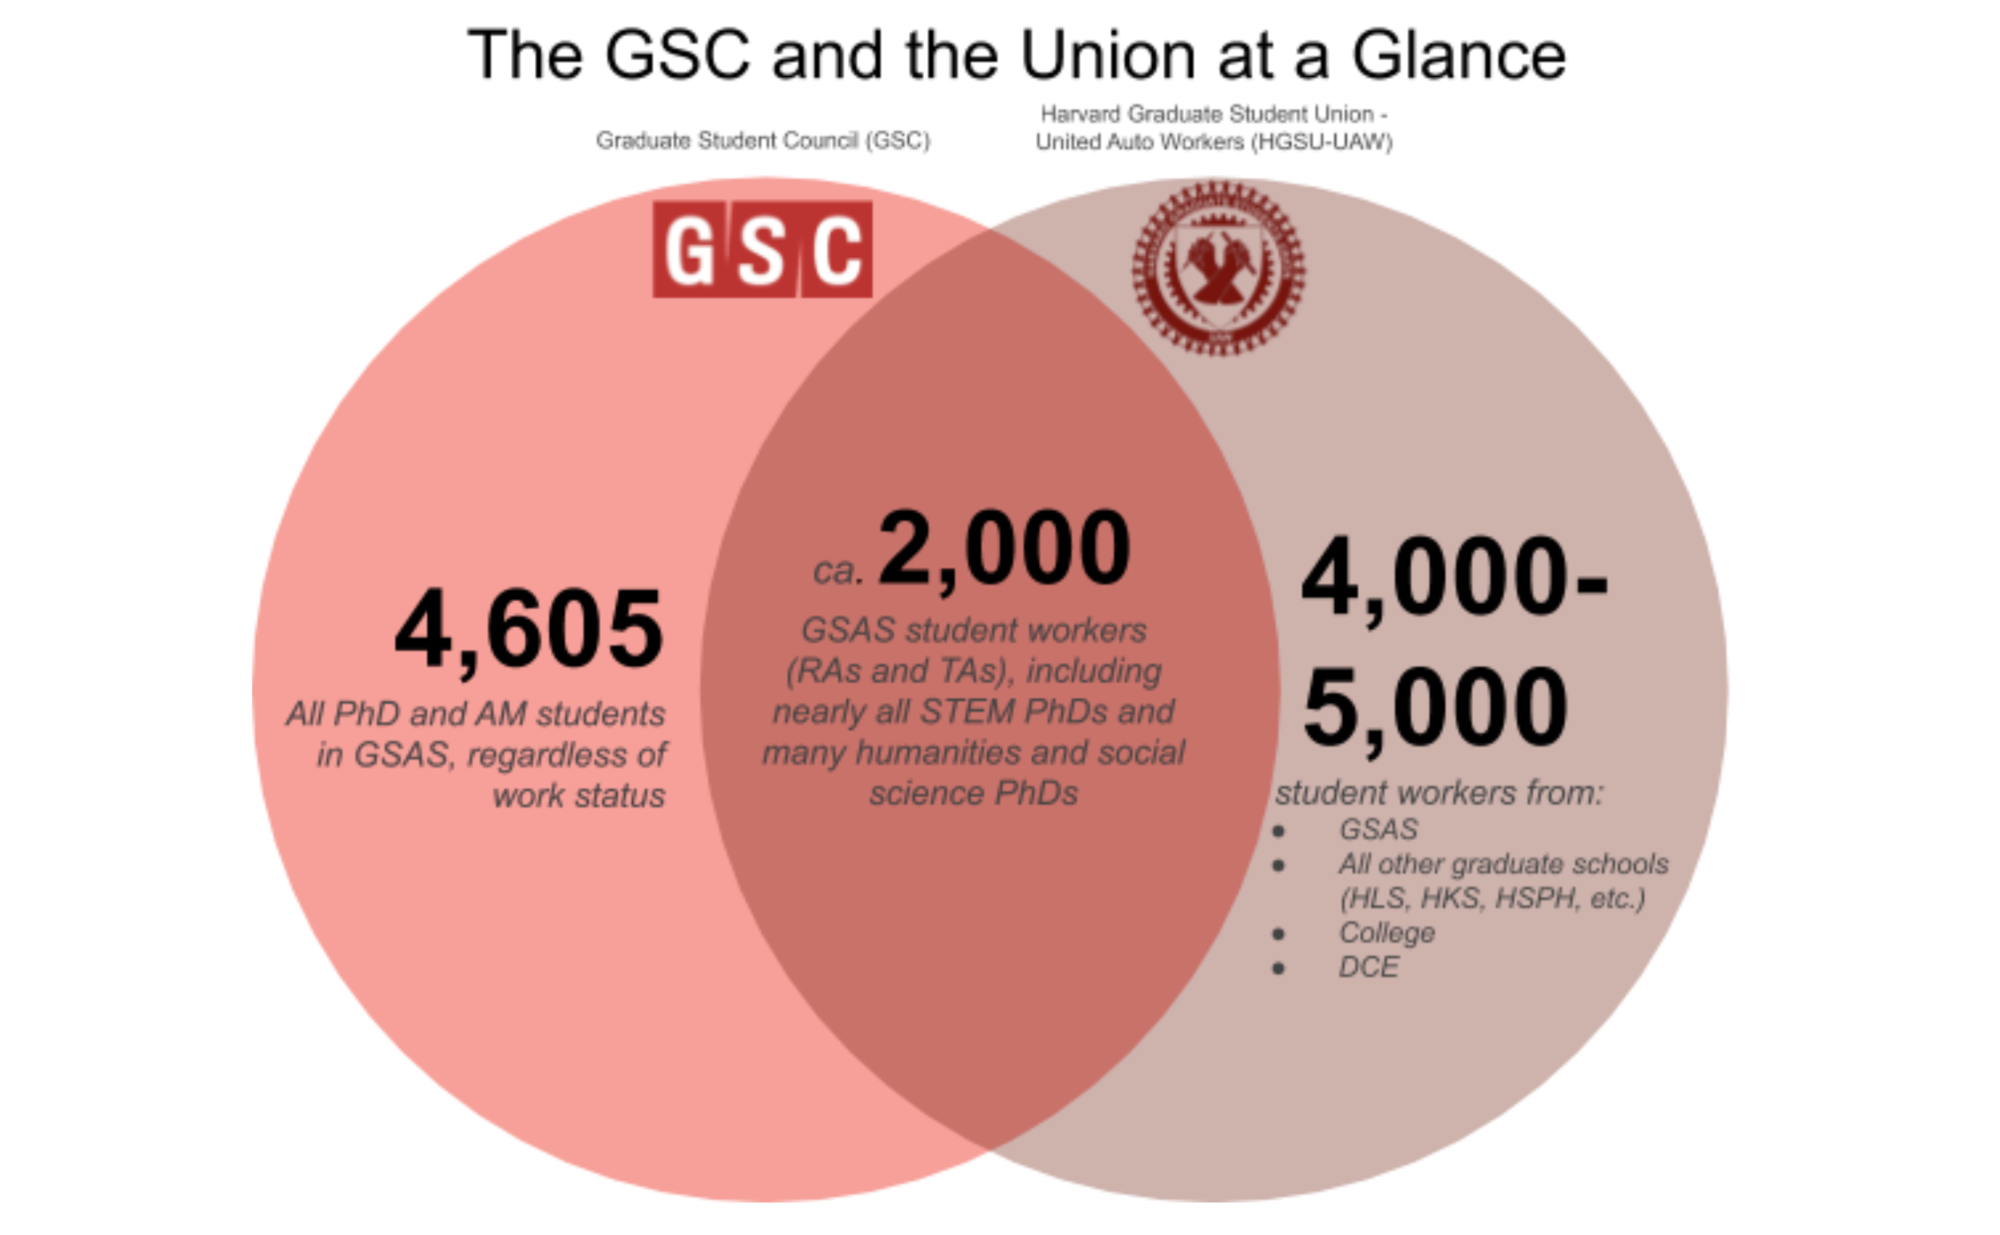 GSC and the Union At a Glance